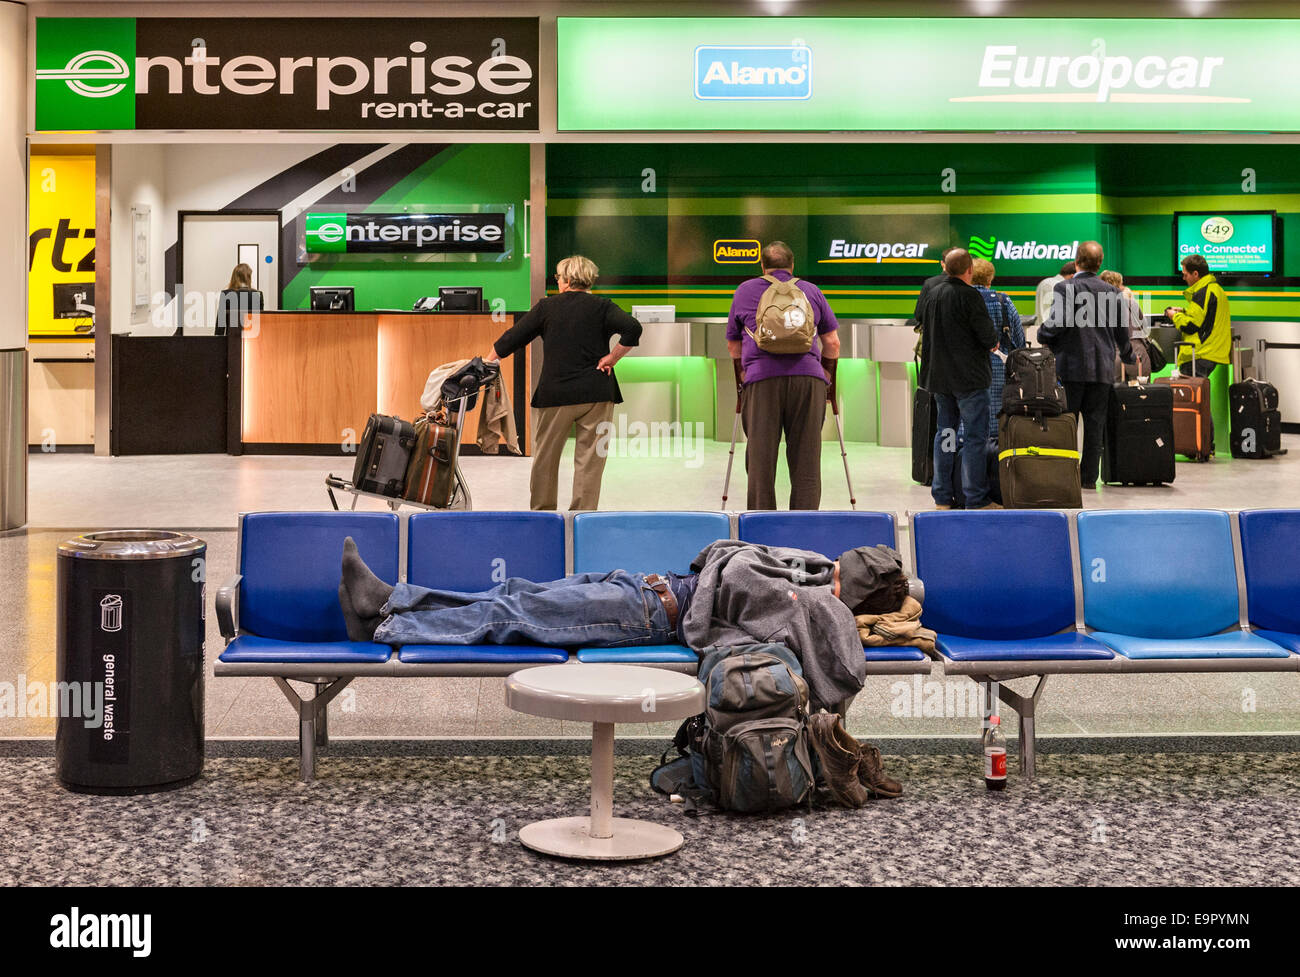 Early morning at Gatwick airport, UK. A sleeping backpacker stretched along a row of seats in front of the car hire - Stock Image